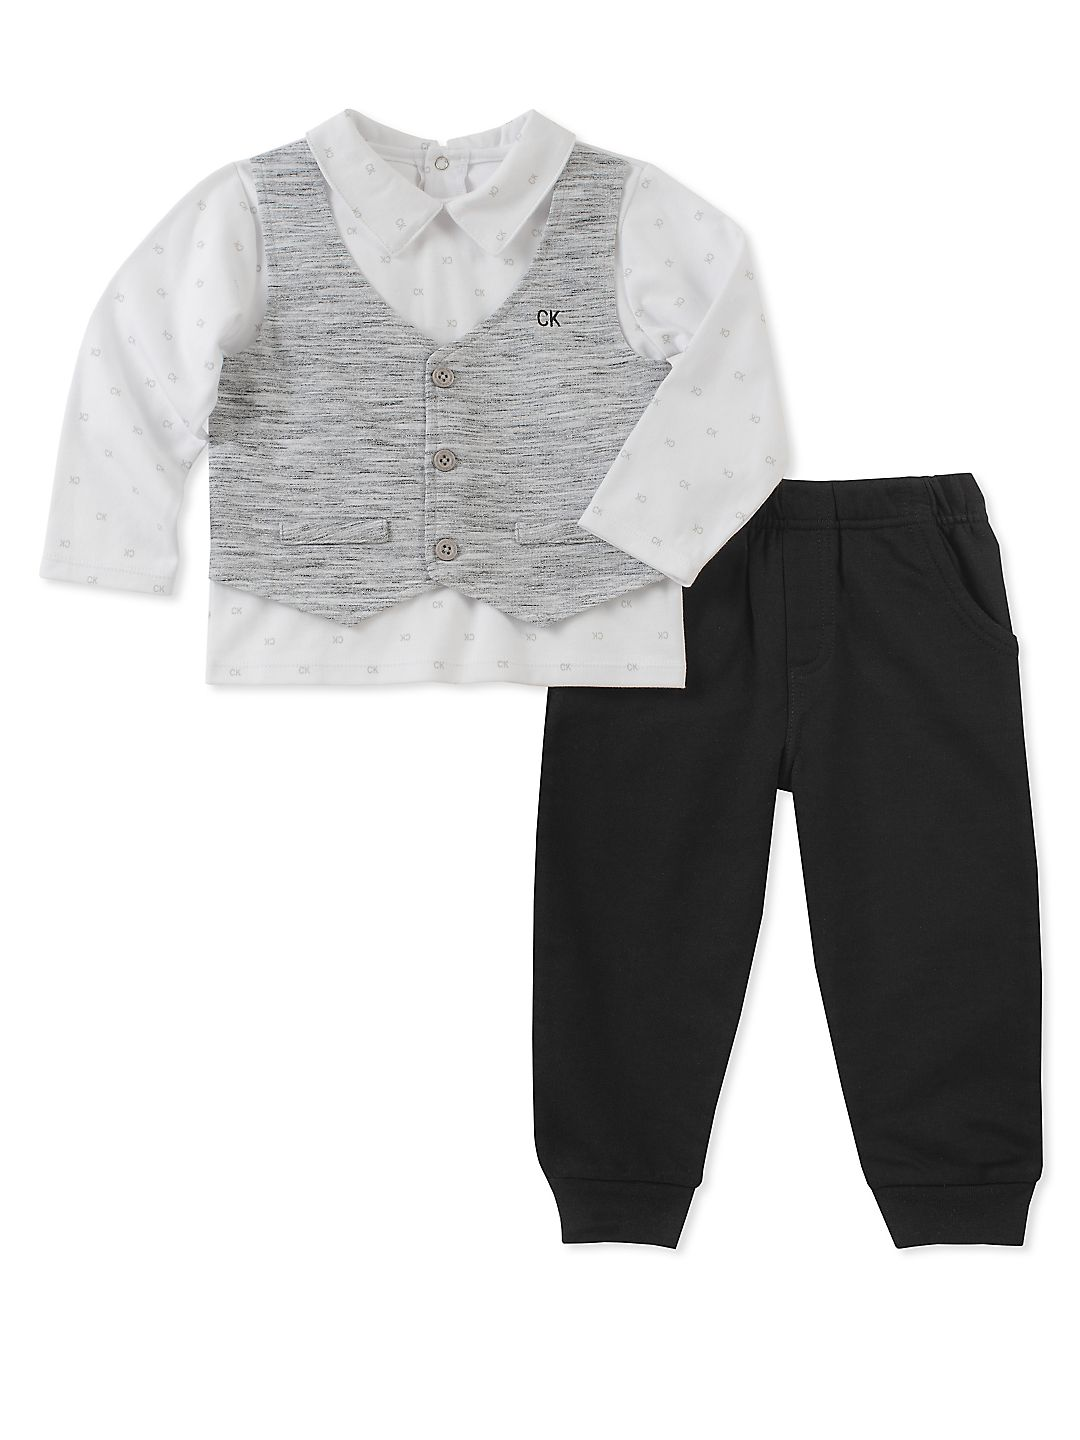 Baby Boy's Two-Piece Vested Top & Pants Set